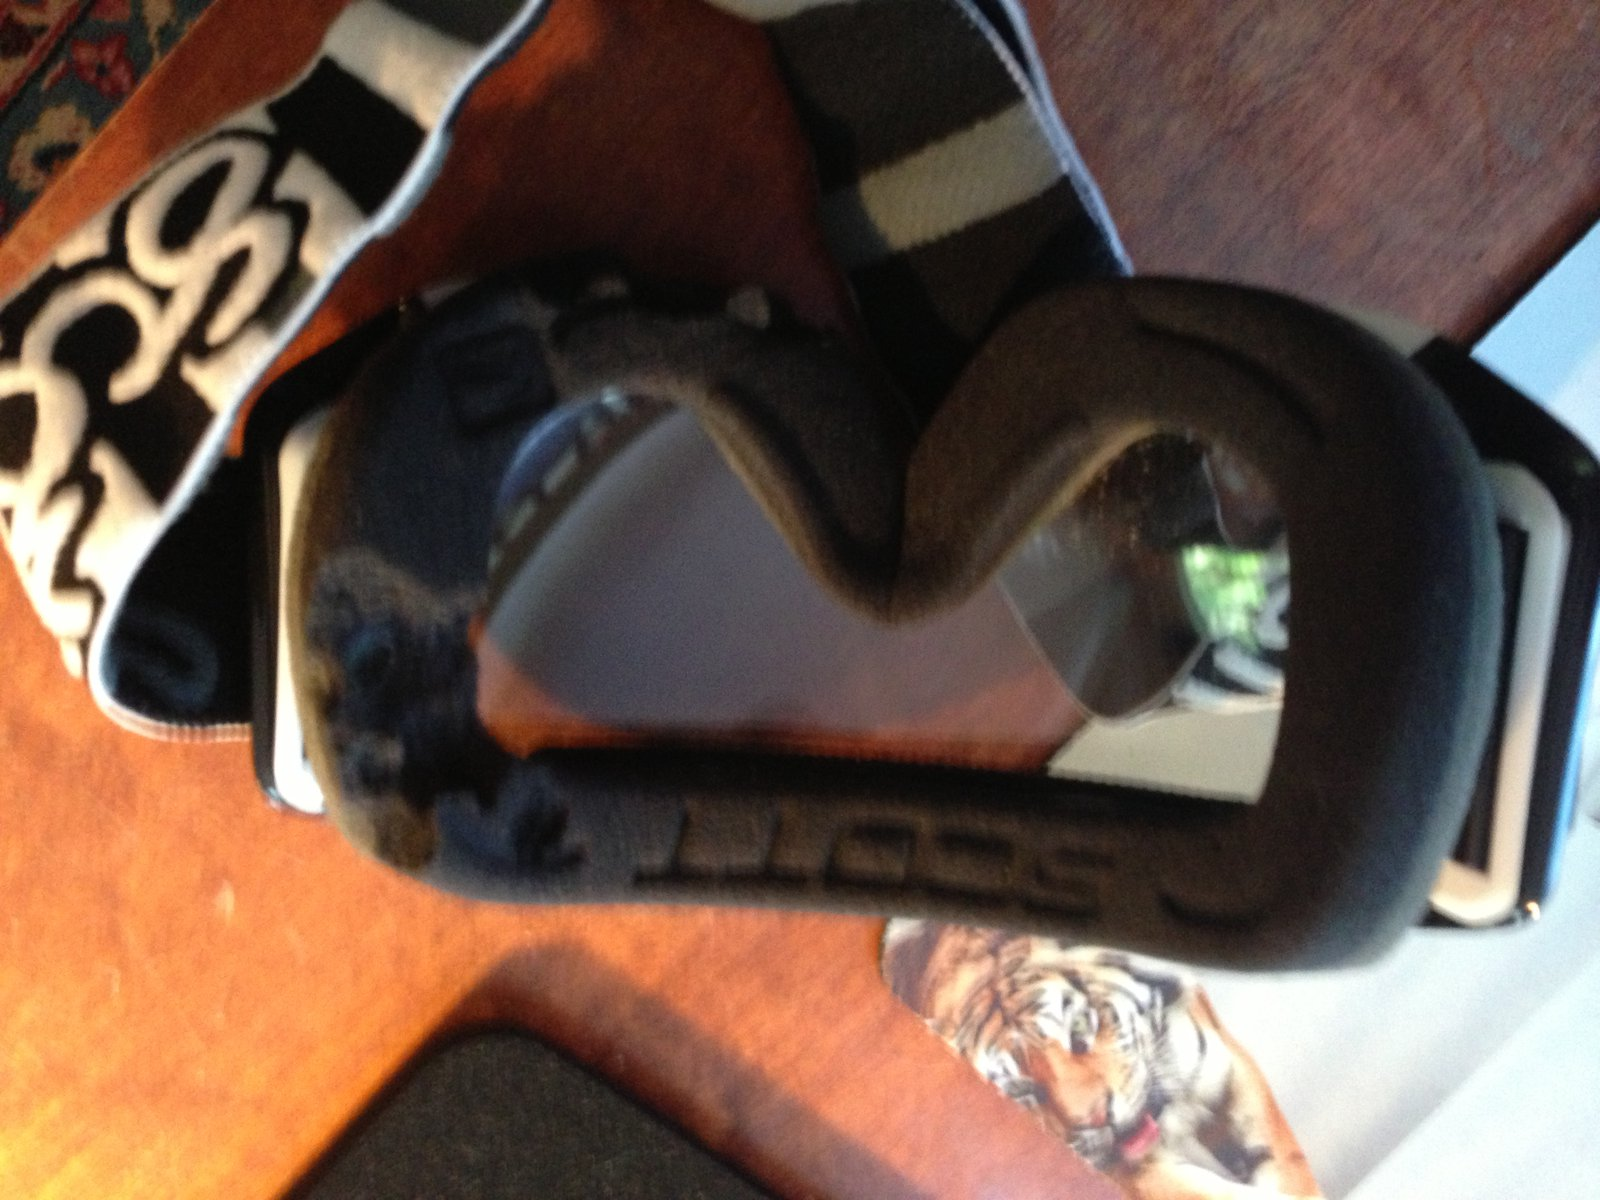 scott fix goggles for sale 2